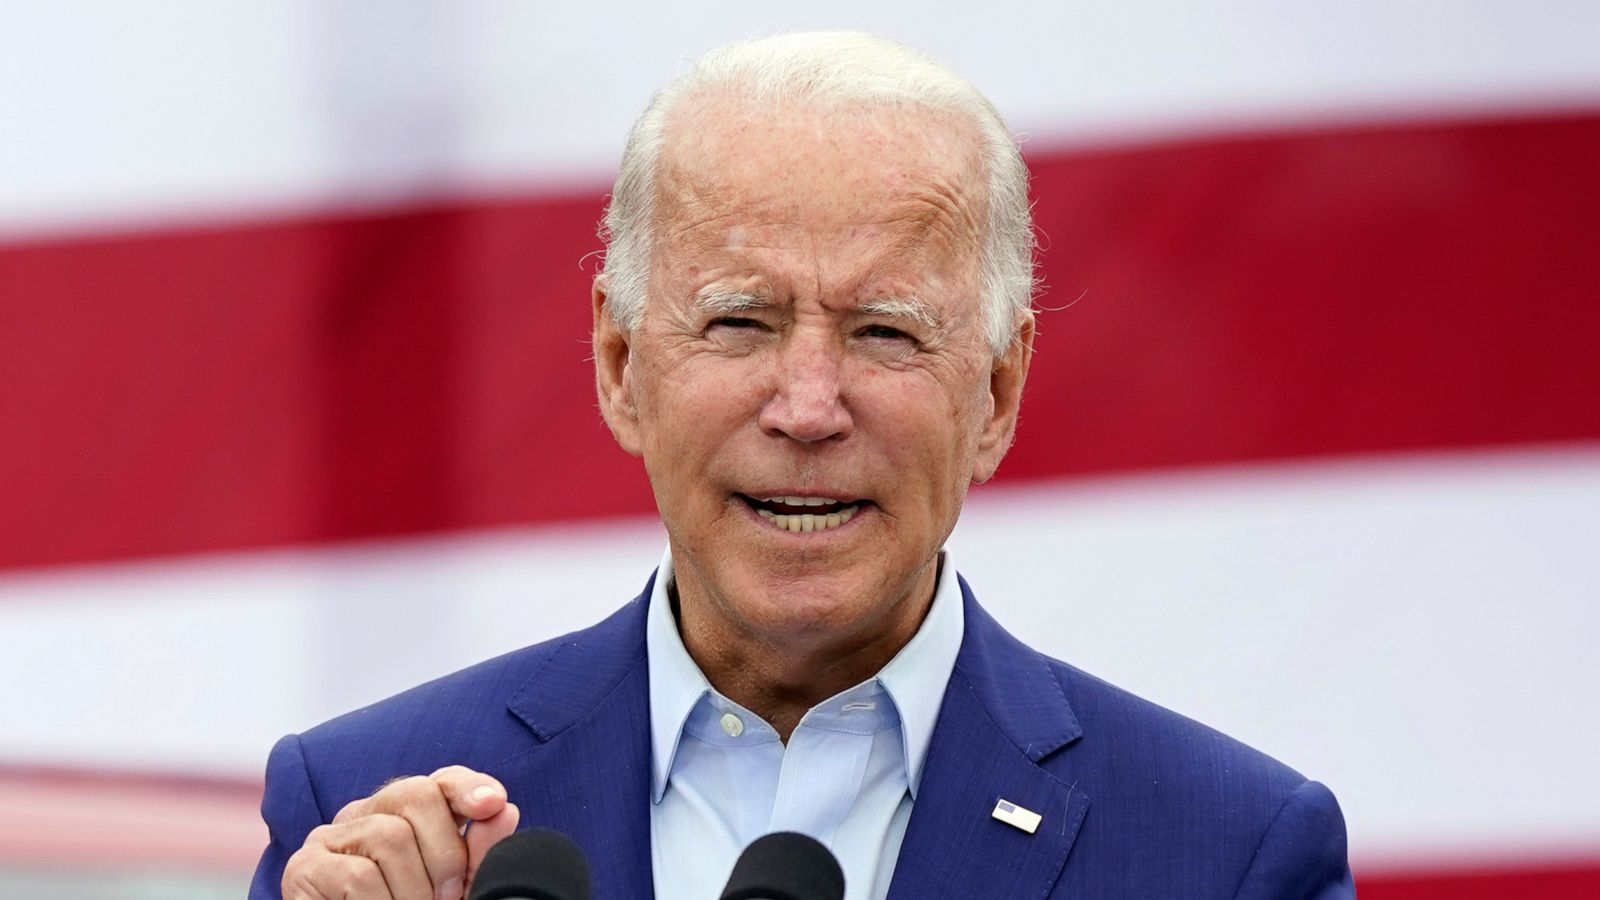 Joe Biden, Anthony Fauci Team With YouTube Stars To Promote Vaccinations